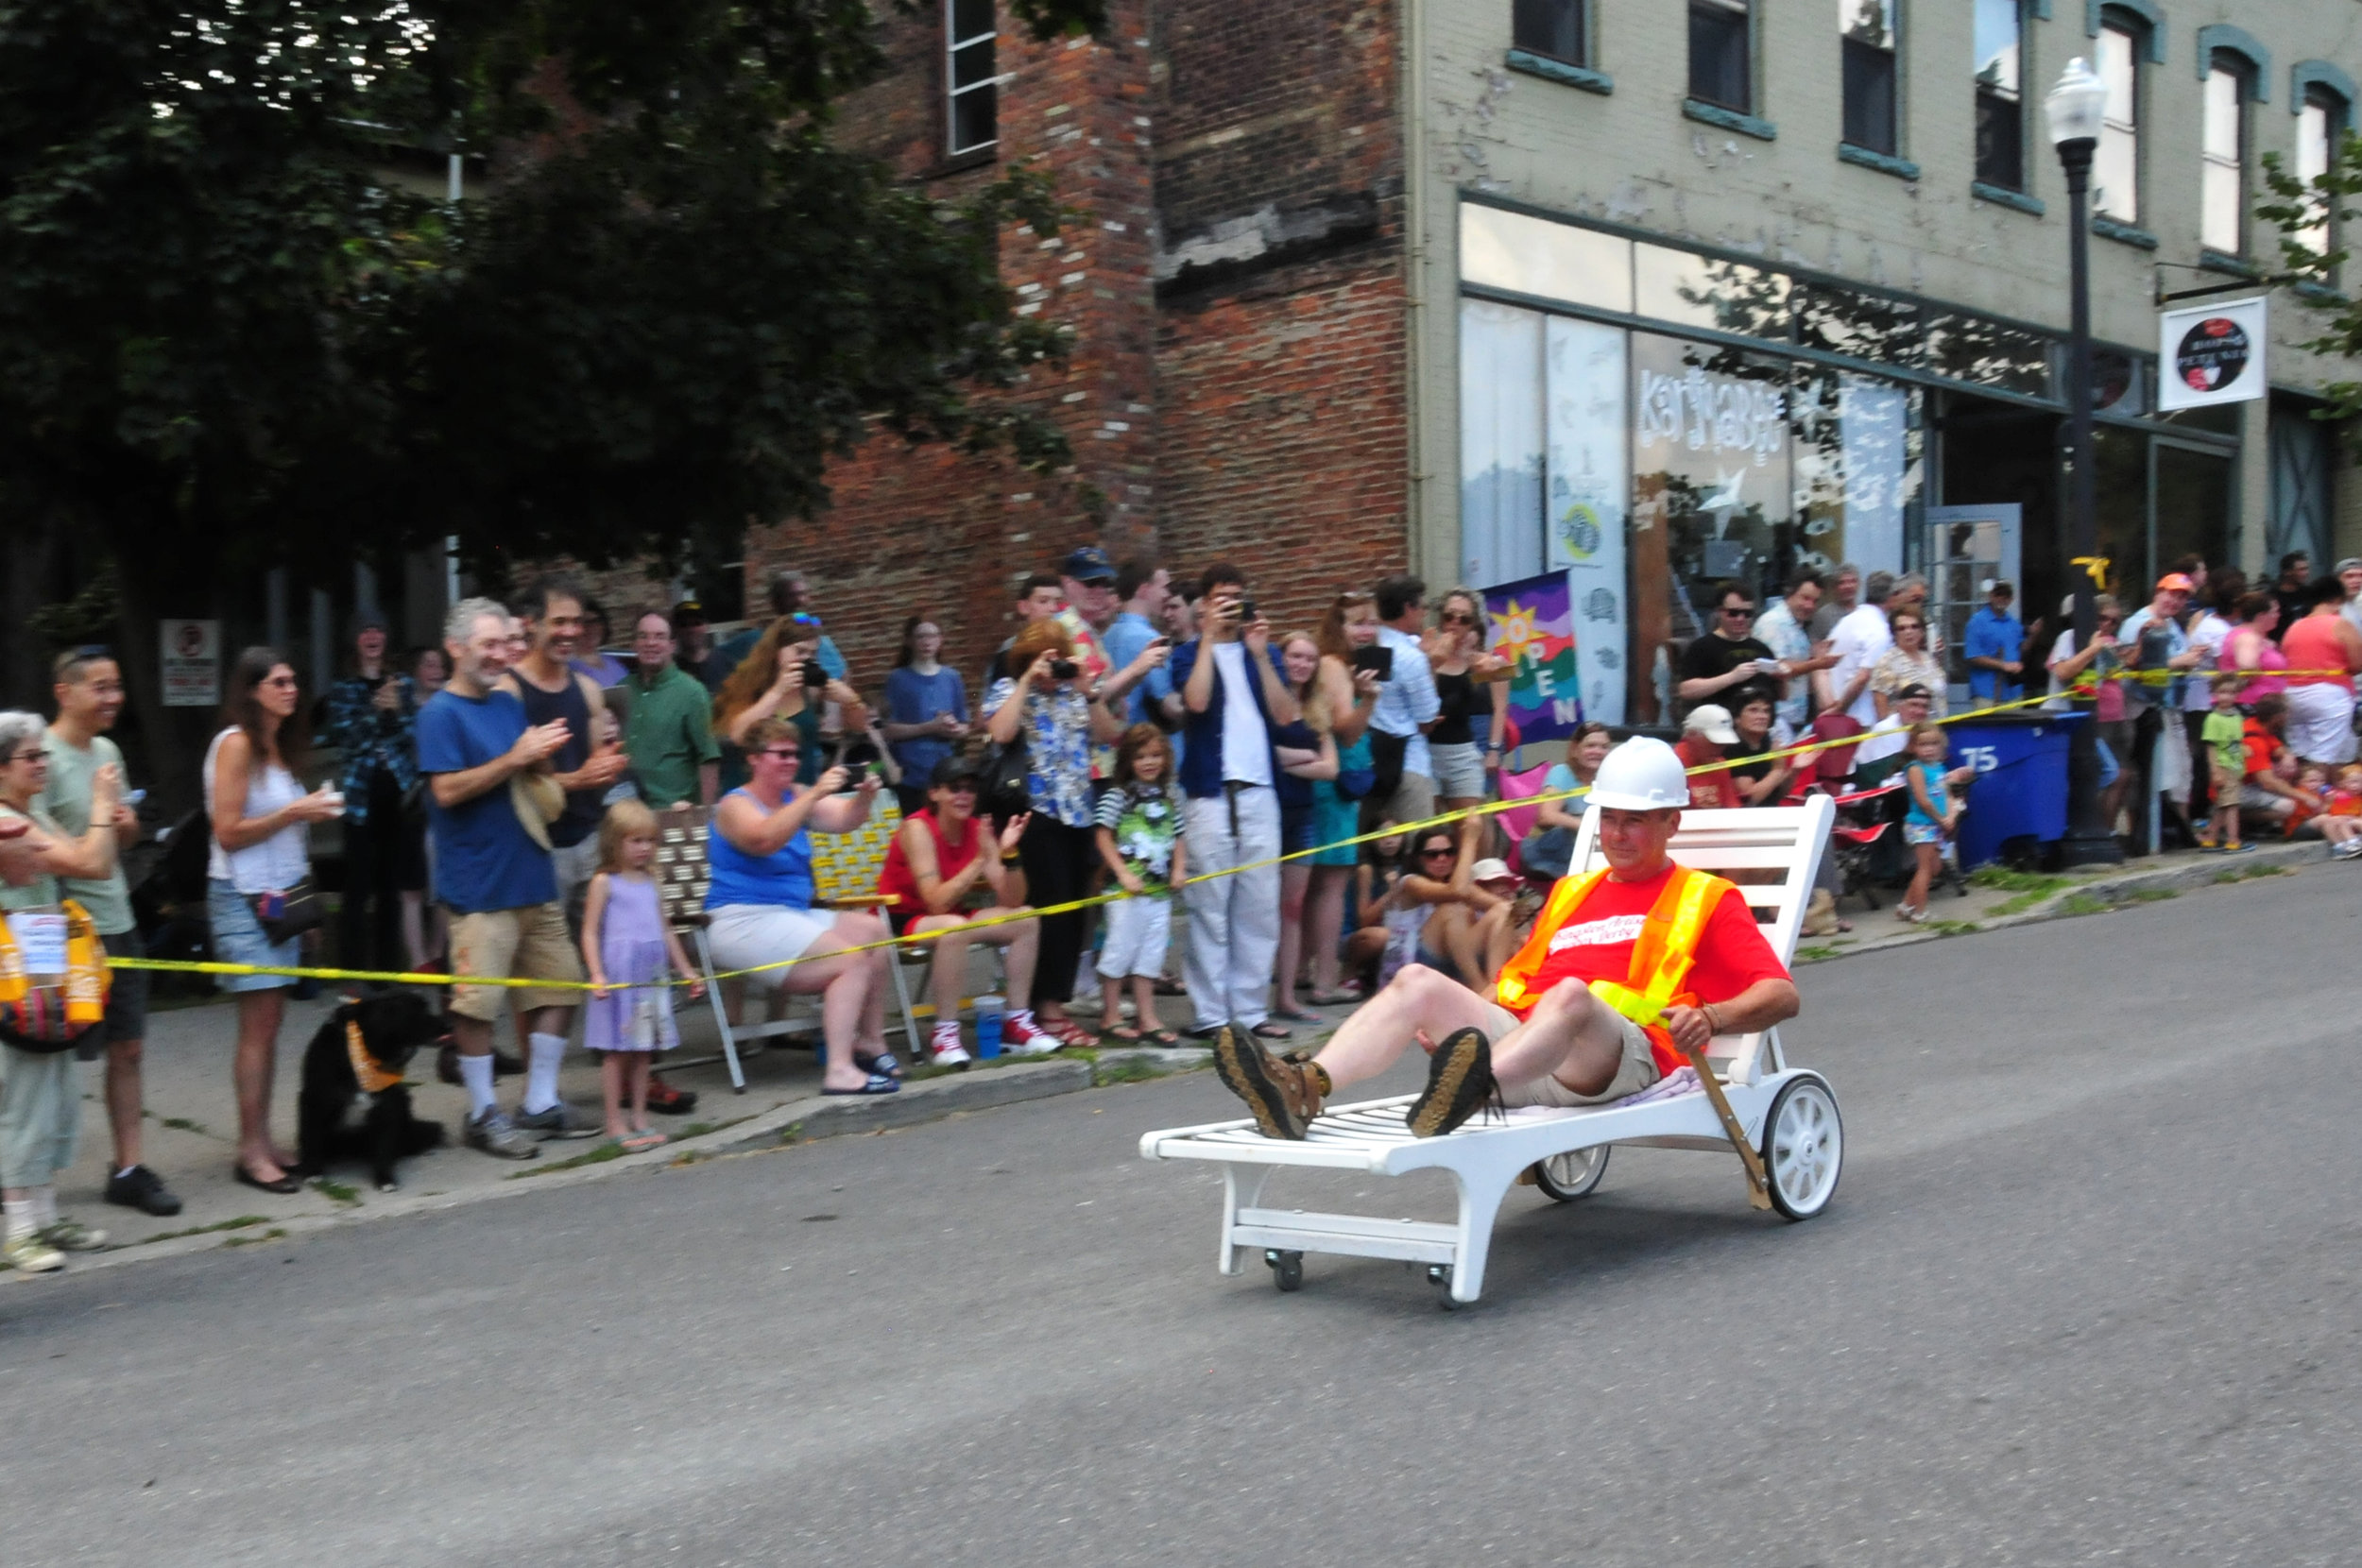 15 Kingston Soapbox Derby - 4 of 17.jpg